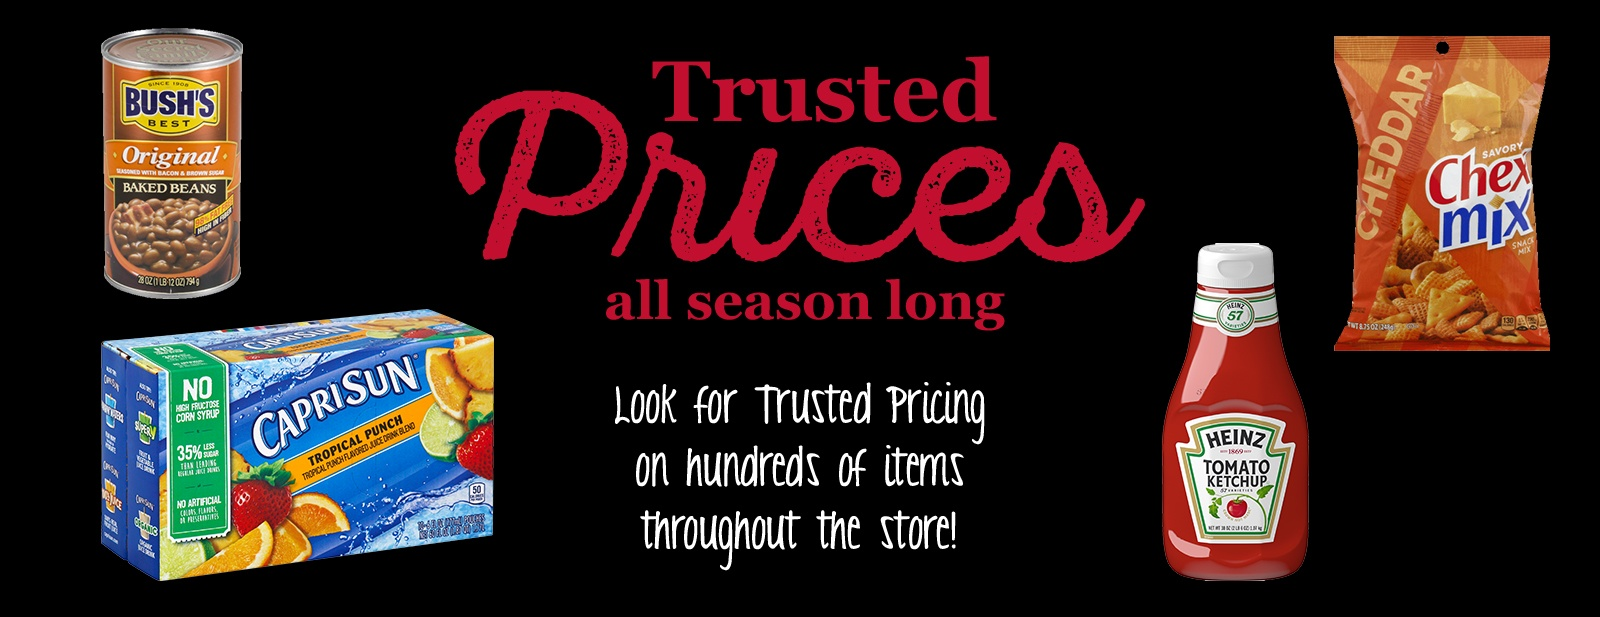 Trusted Prices All Season Long